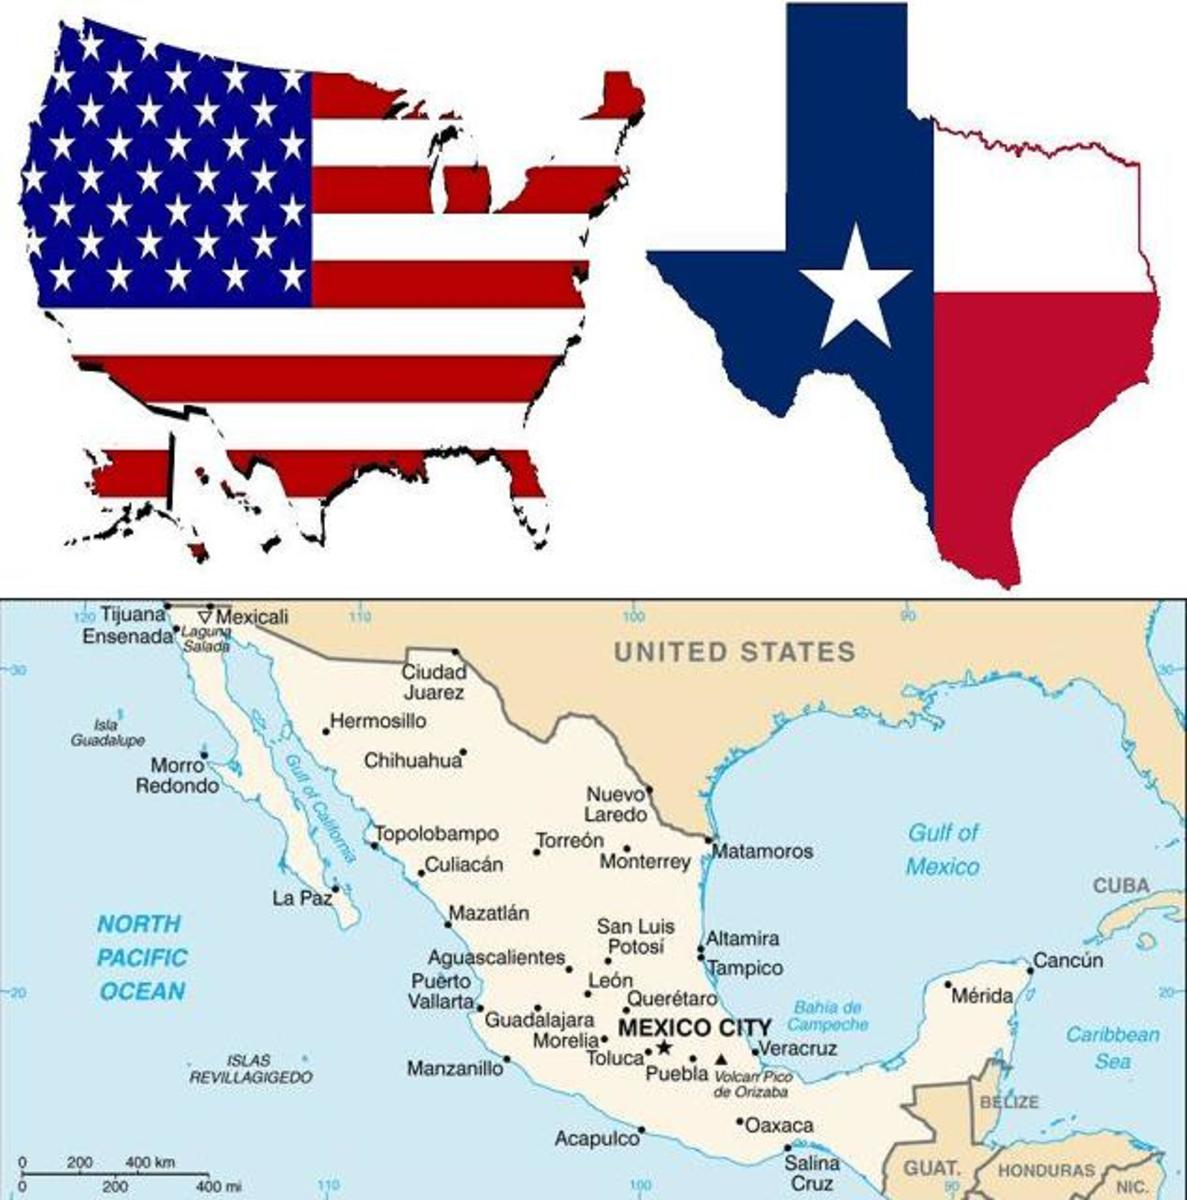 illegal-immigration-in-the-usa-a-proposed-solution